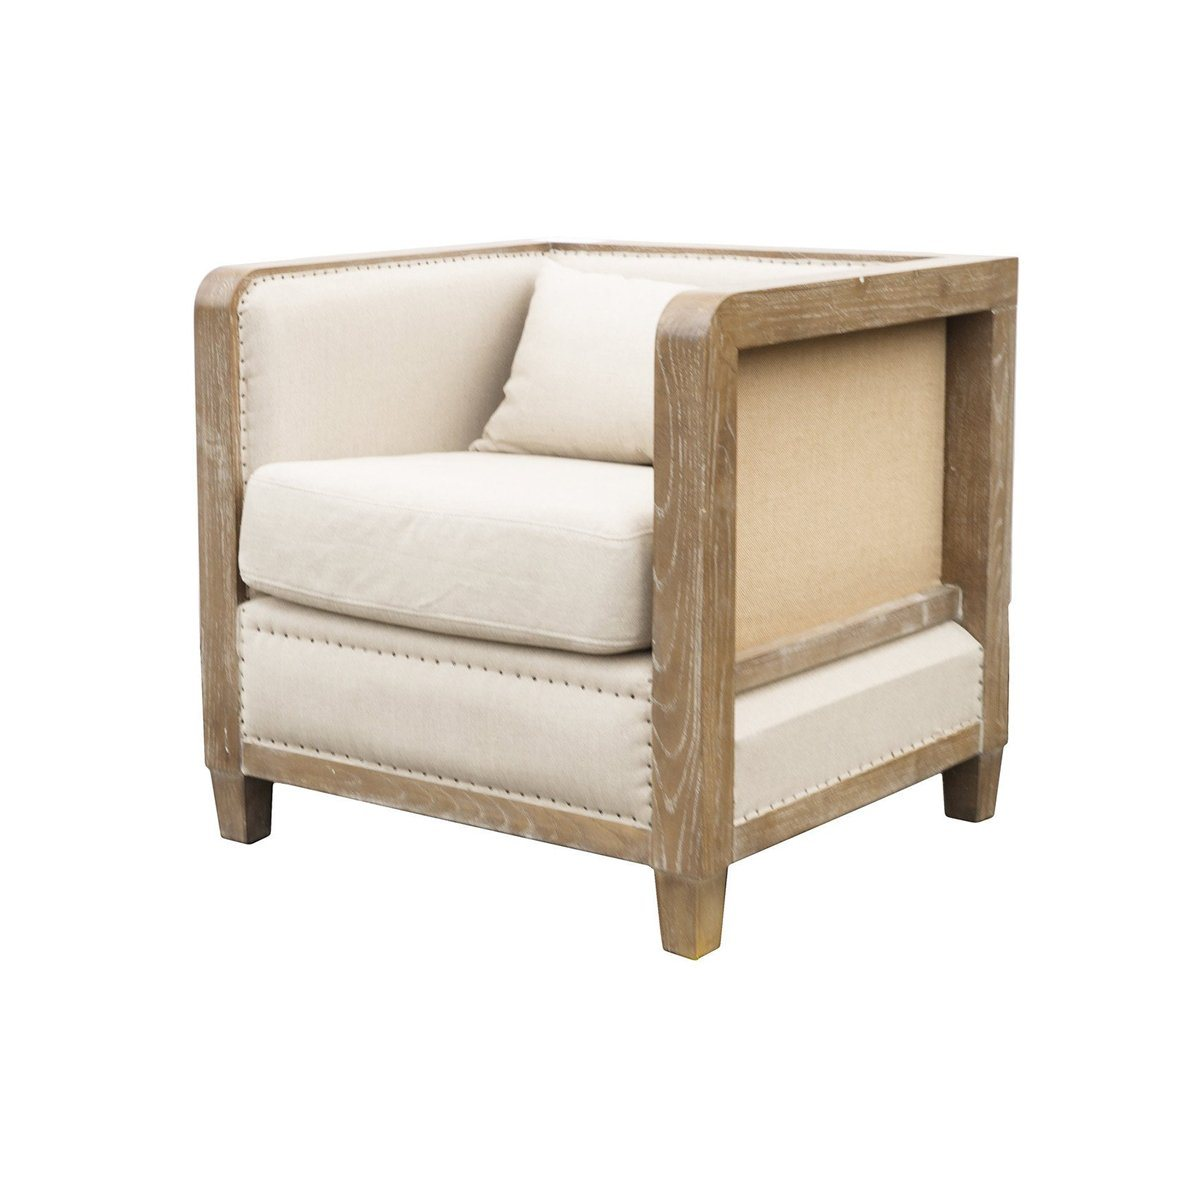 Deconstructed Club Chair - Antique Linen - Showhome Furniture